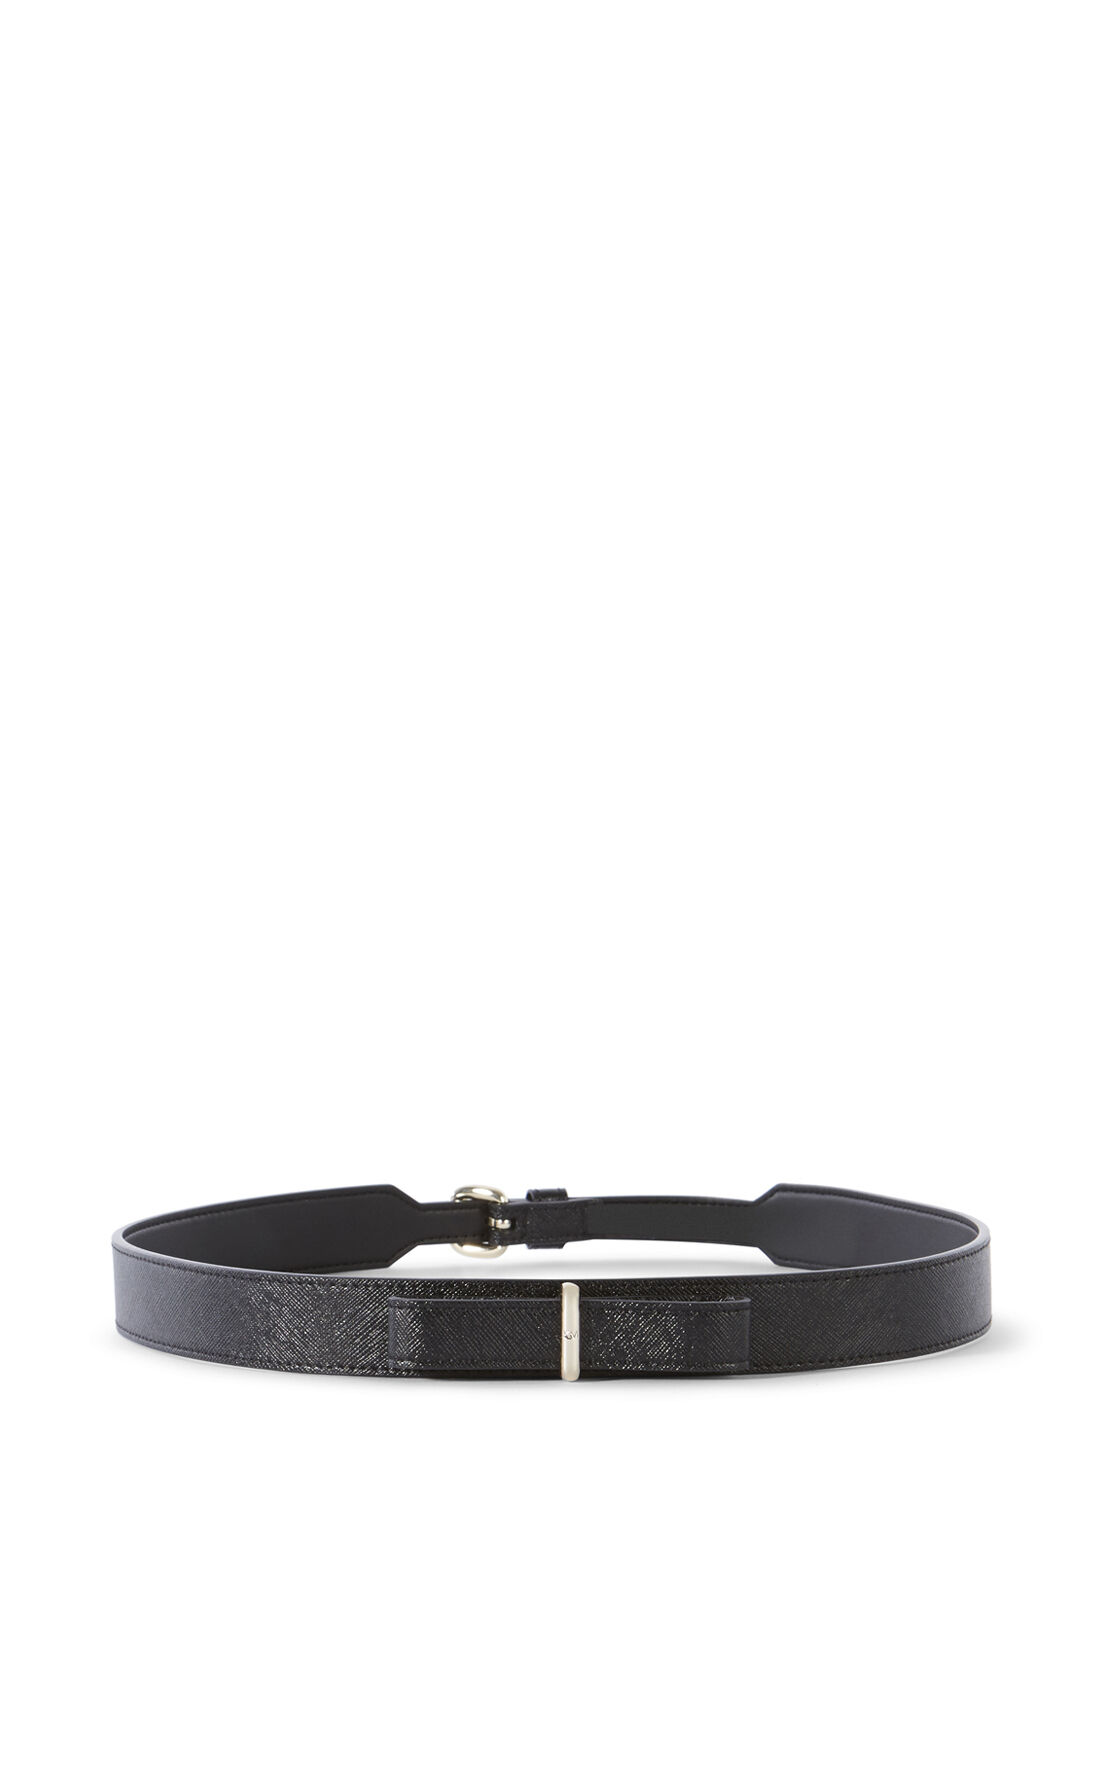 Karen Millen, LEATHER BOW WAIST BELT Black 0